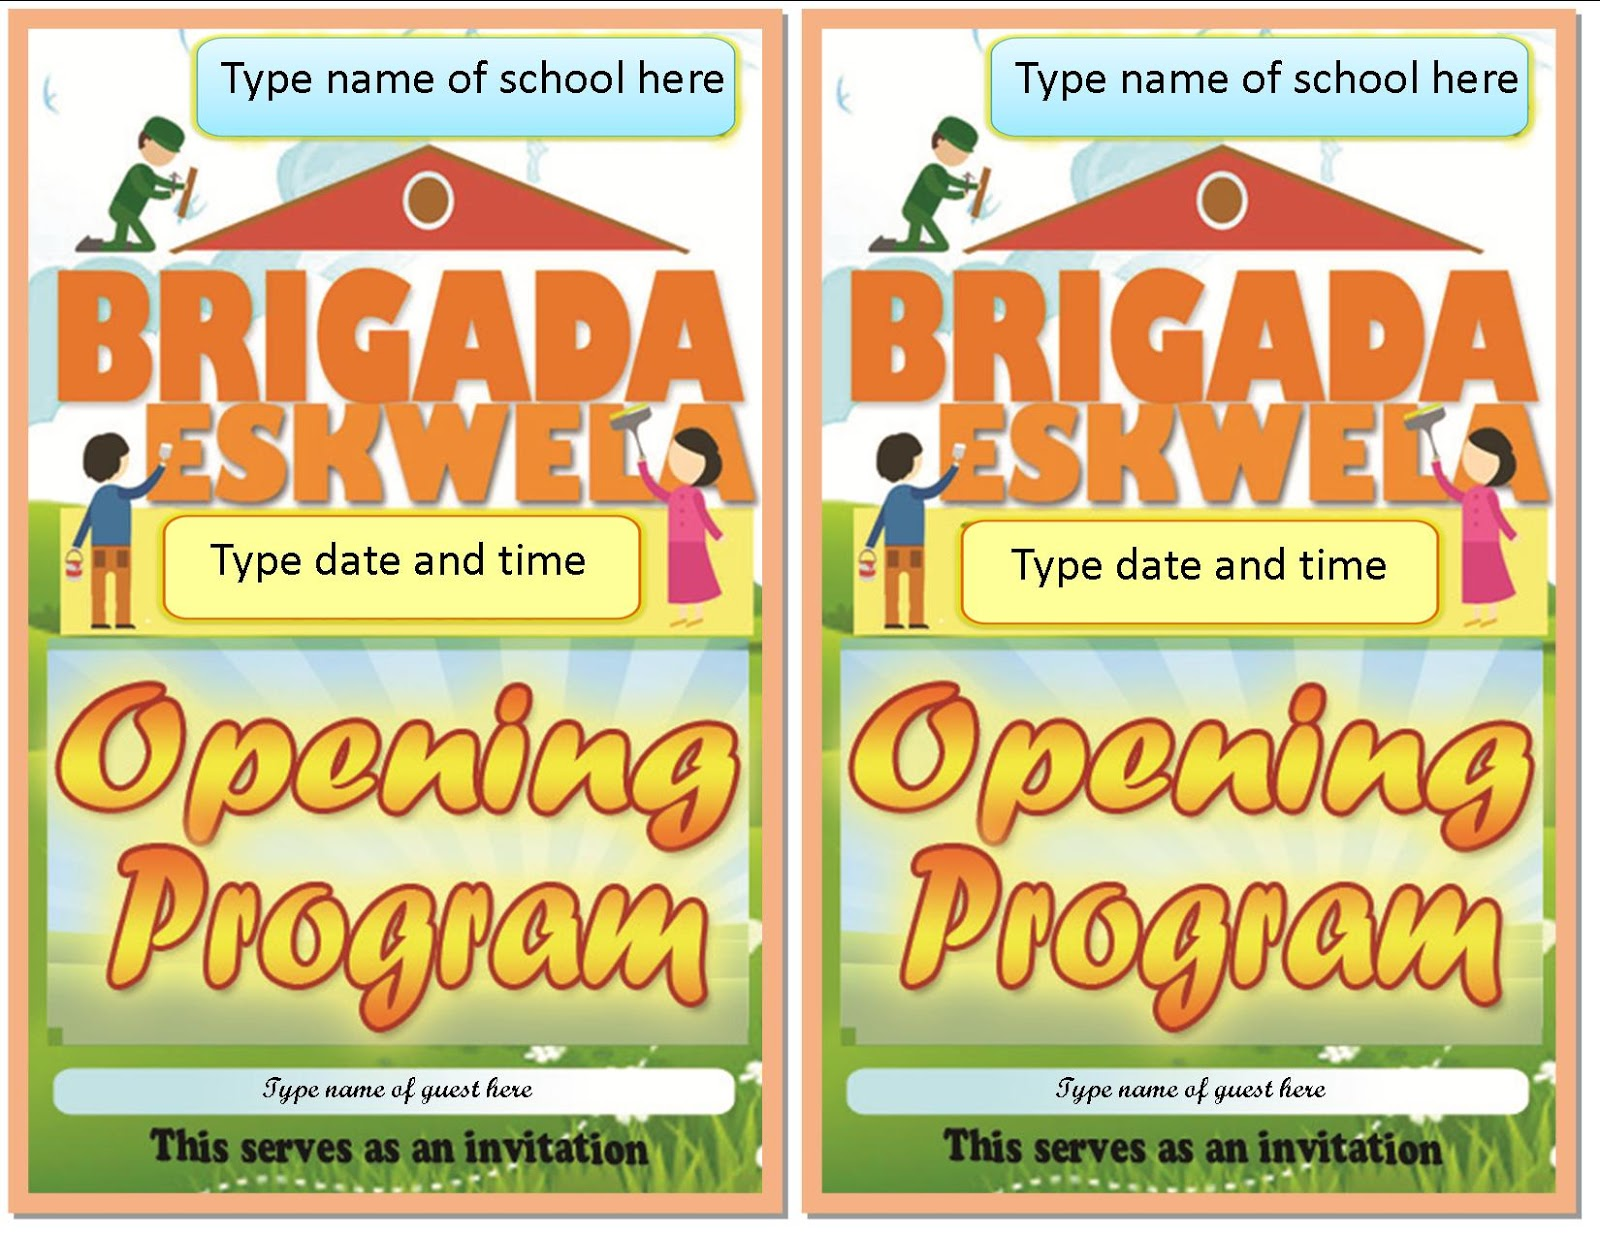 May 2016 deped lps printable brigada eskwela program layout design yadclub Image collections